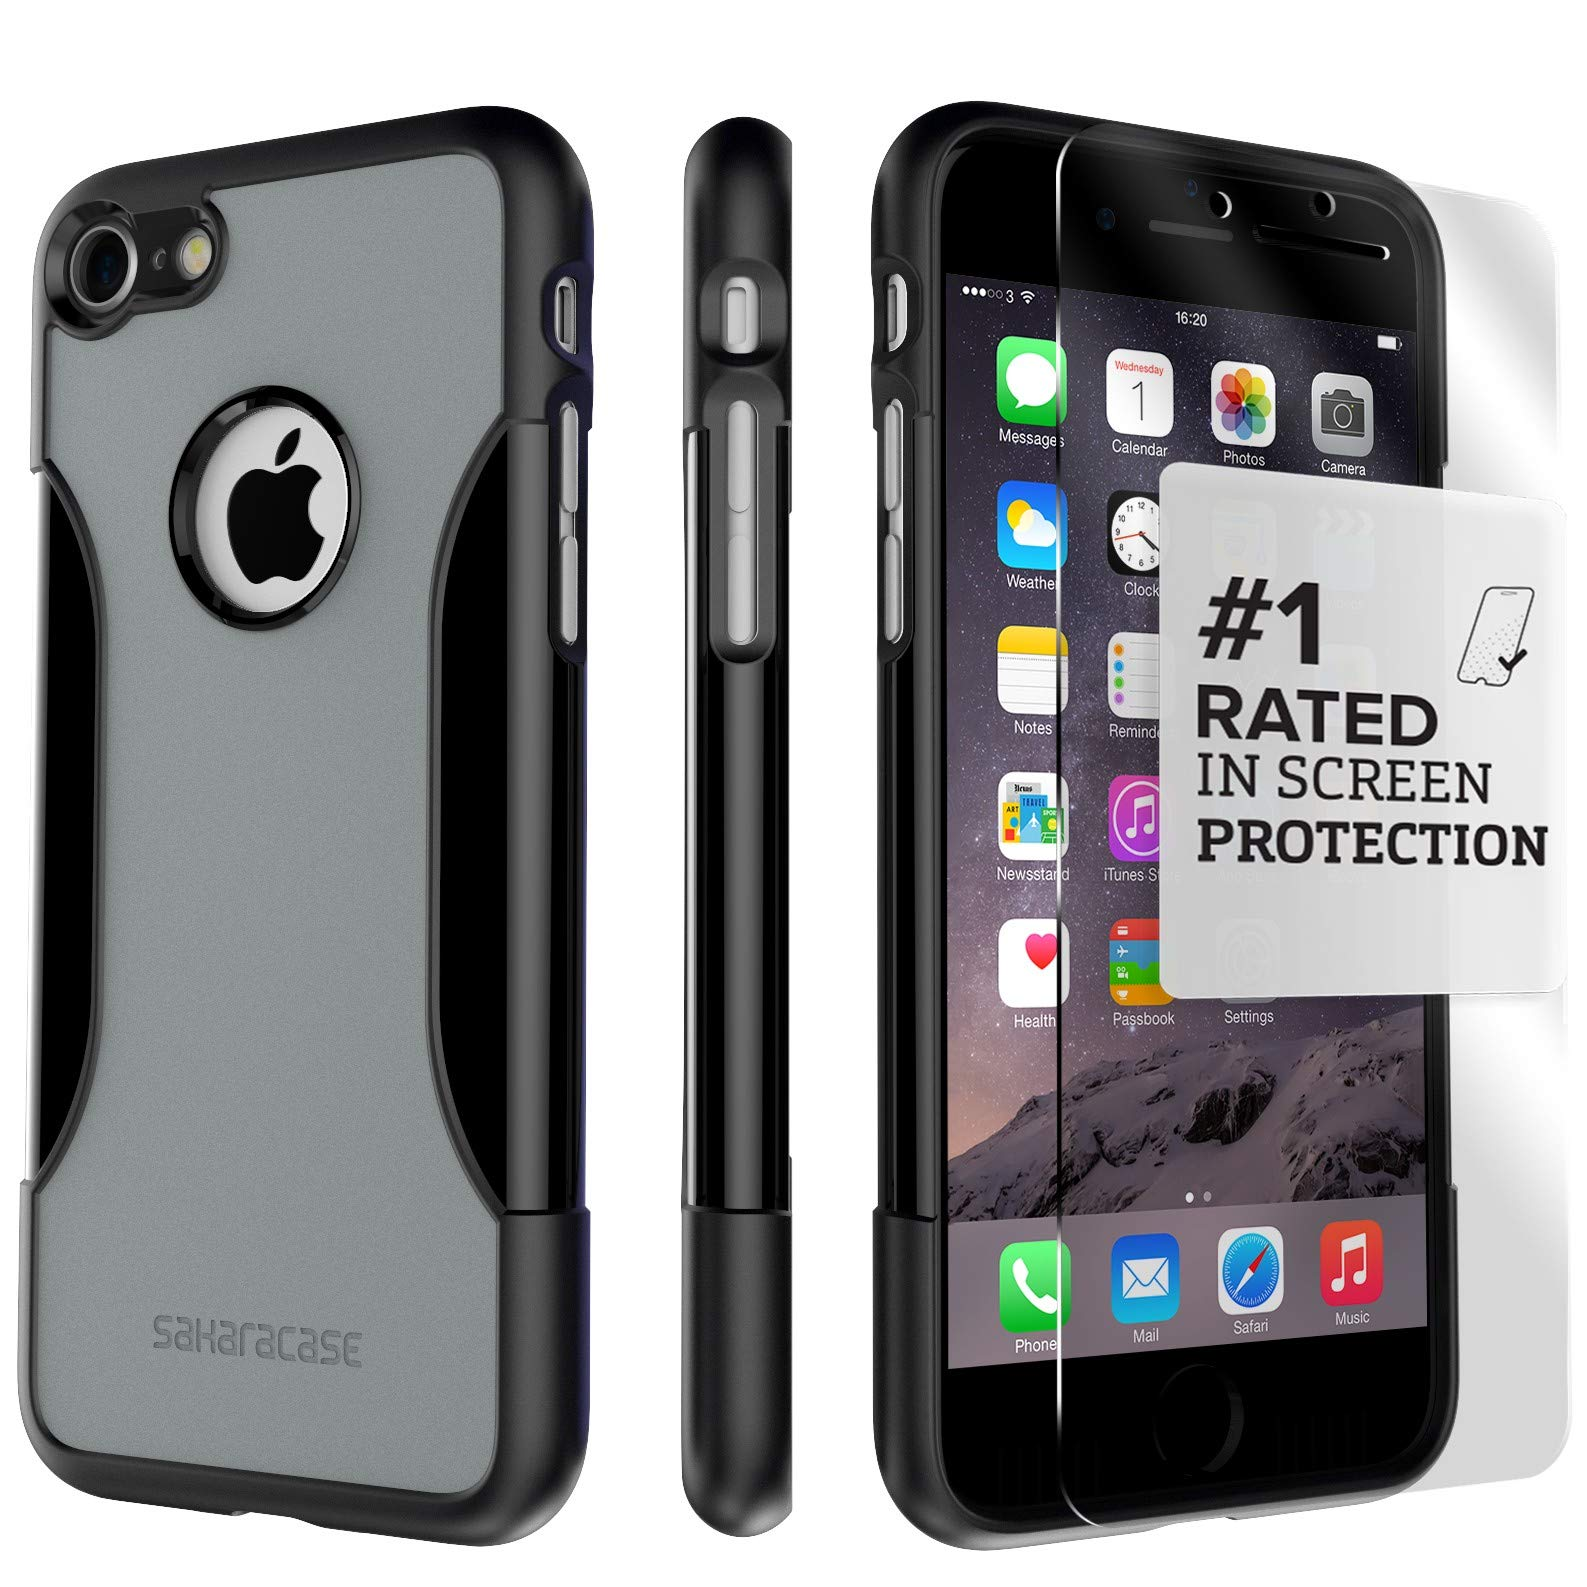 iPhone 8 Case and 7 Case, SaharaCase Protective Kit Bundle with [ZeroDamage Tempered Glass Screen Protector] Rugged Protection Anti-Slip Grip [Shockproof Bumper] Slim Fit - Black Gray by Sahara Case